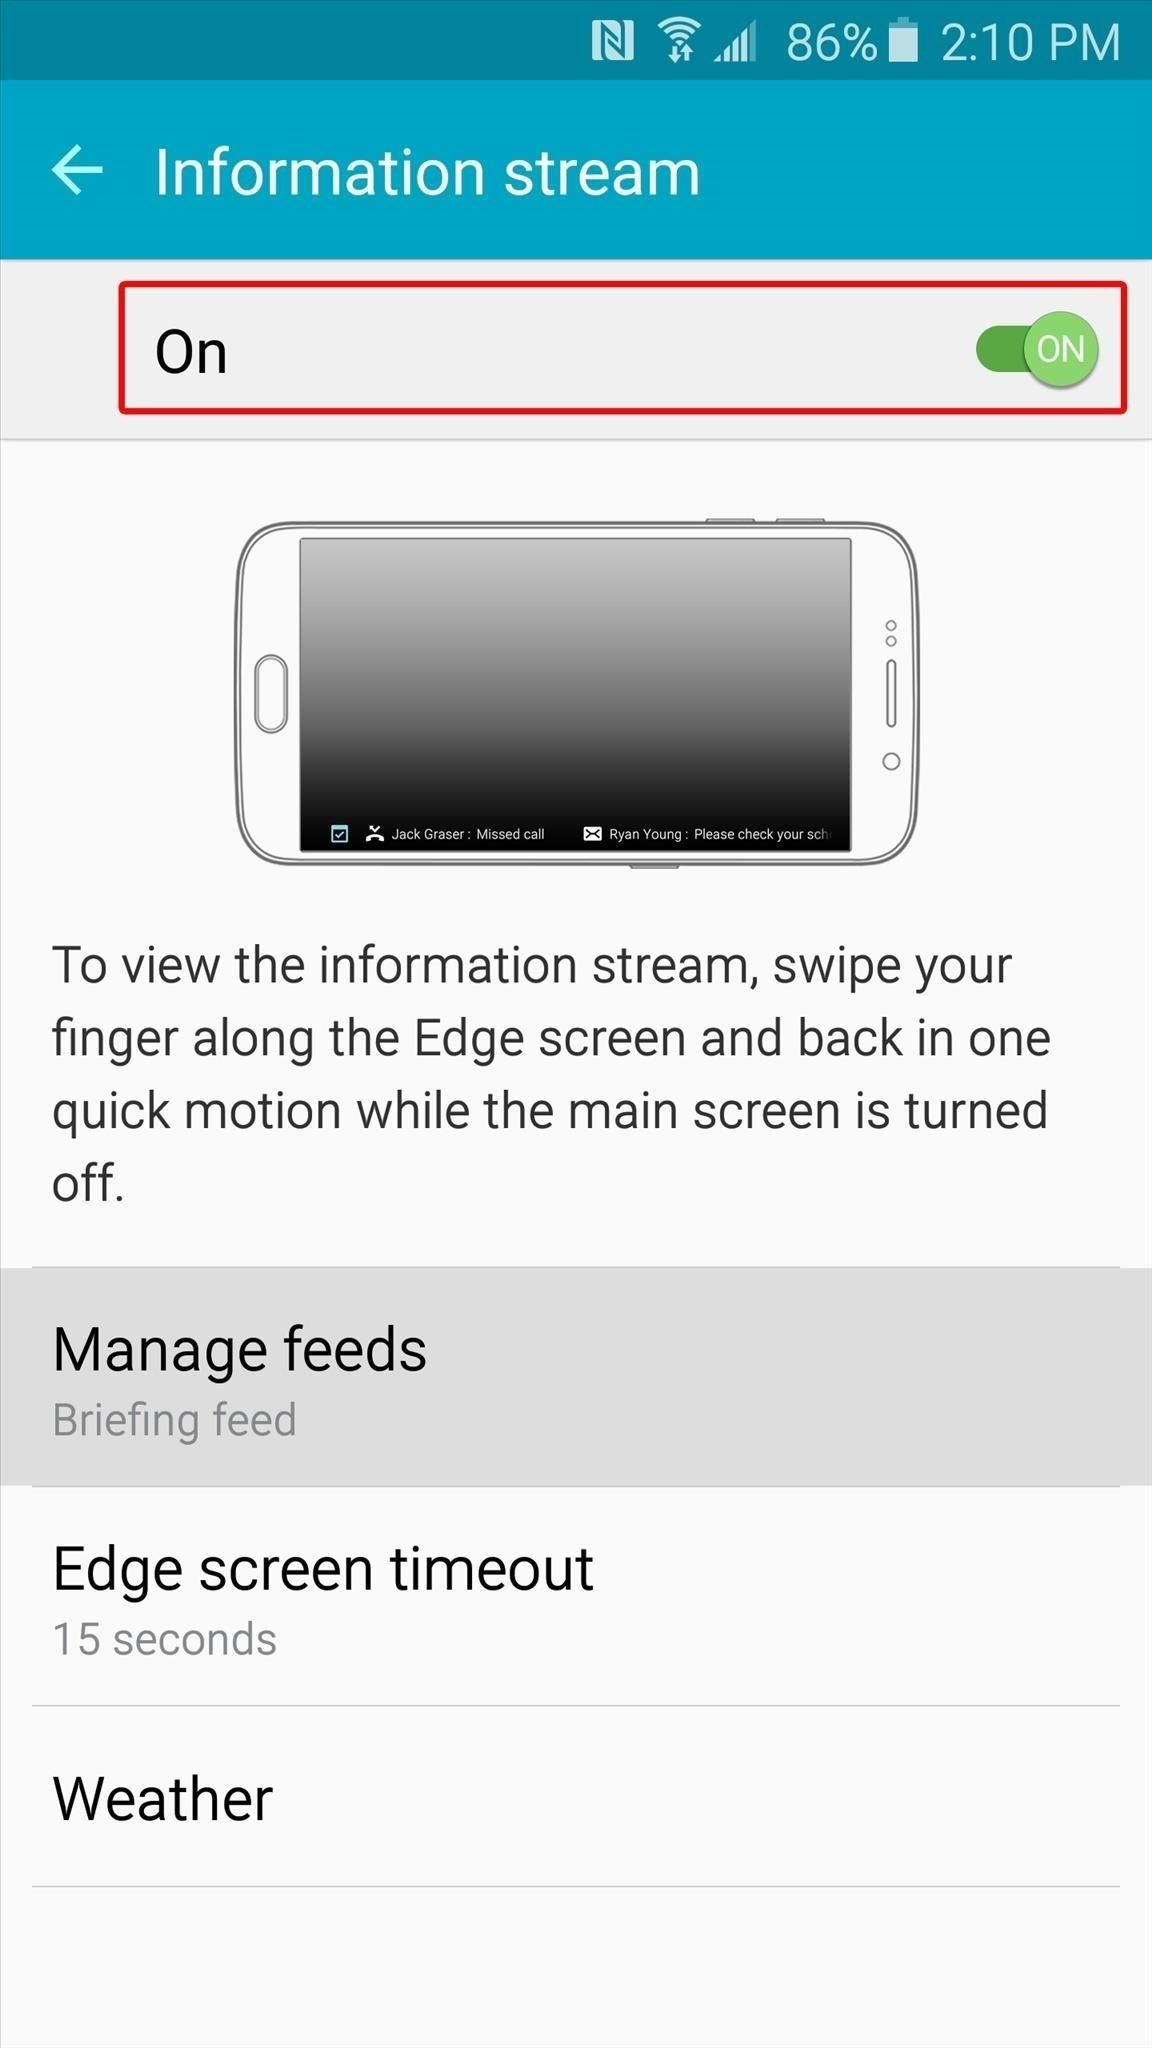 Add a Battery Meter & System Stats to the Information Stream on Your Galaxy S6 Edge